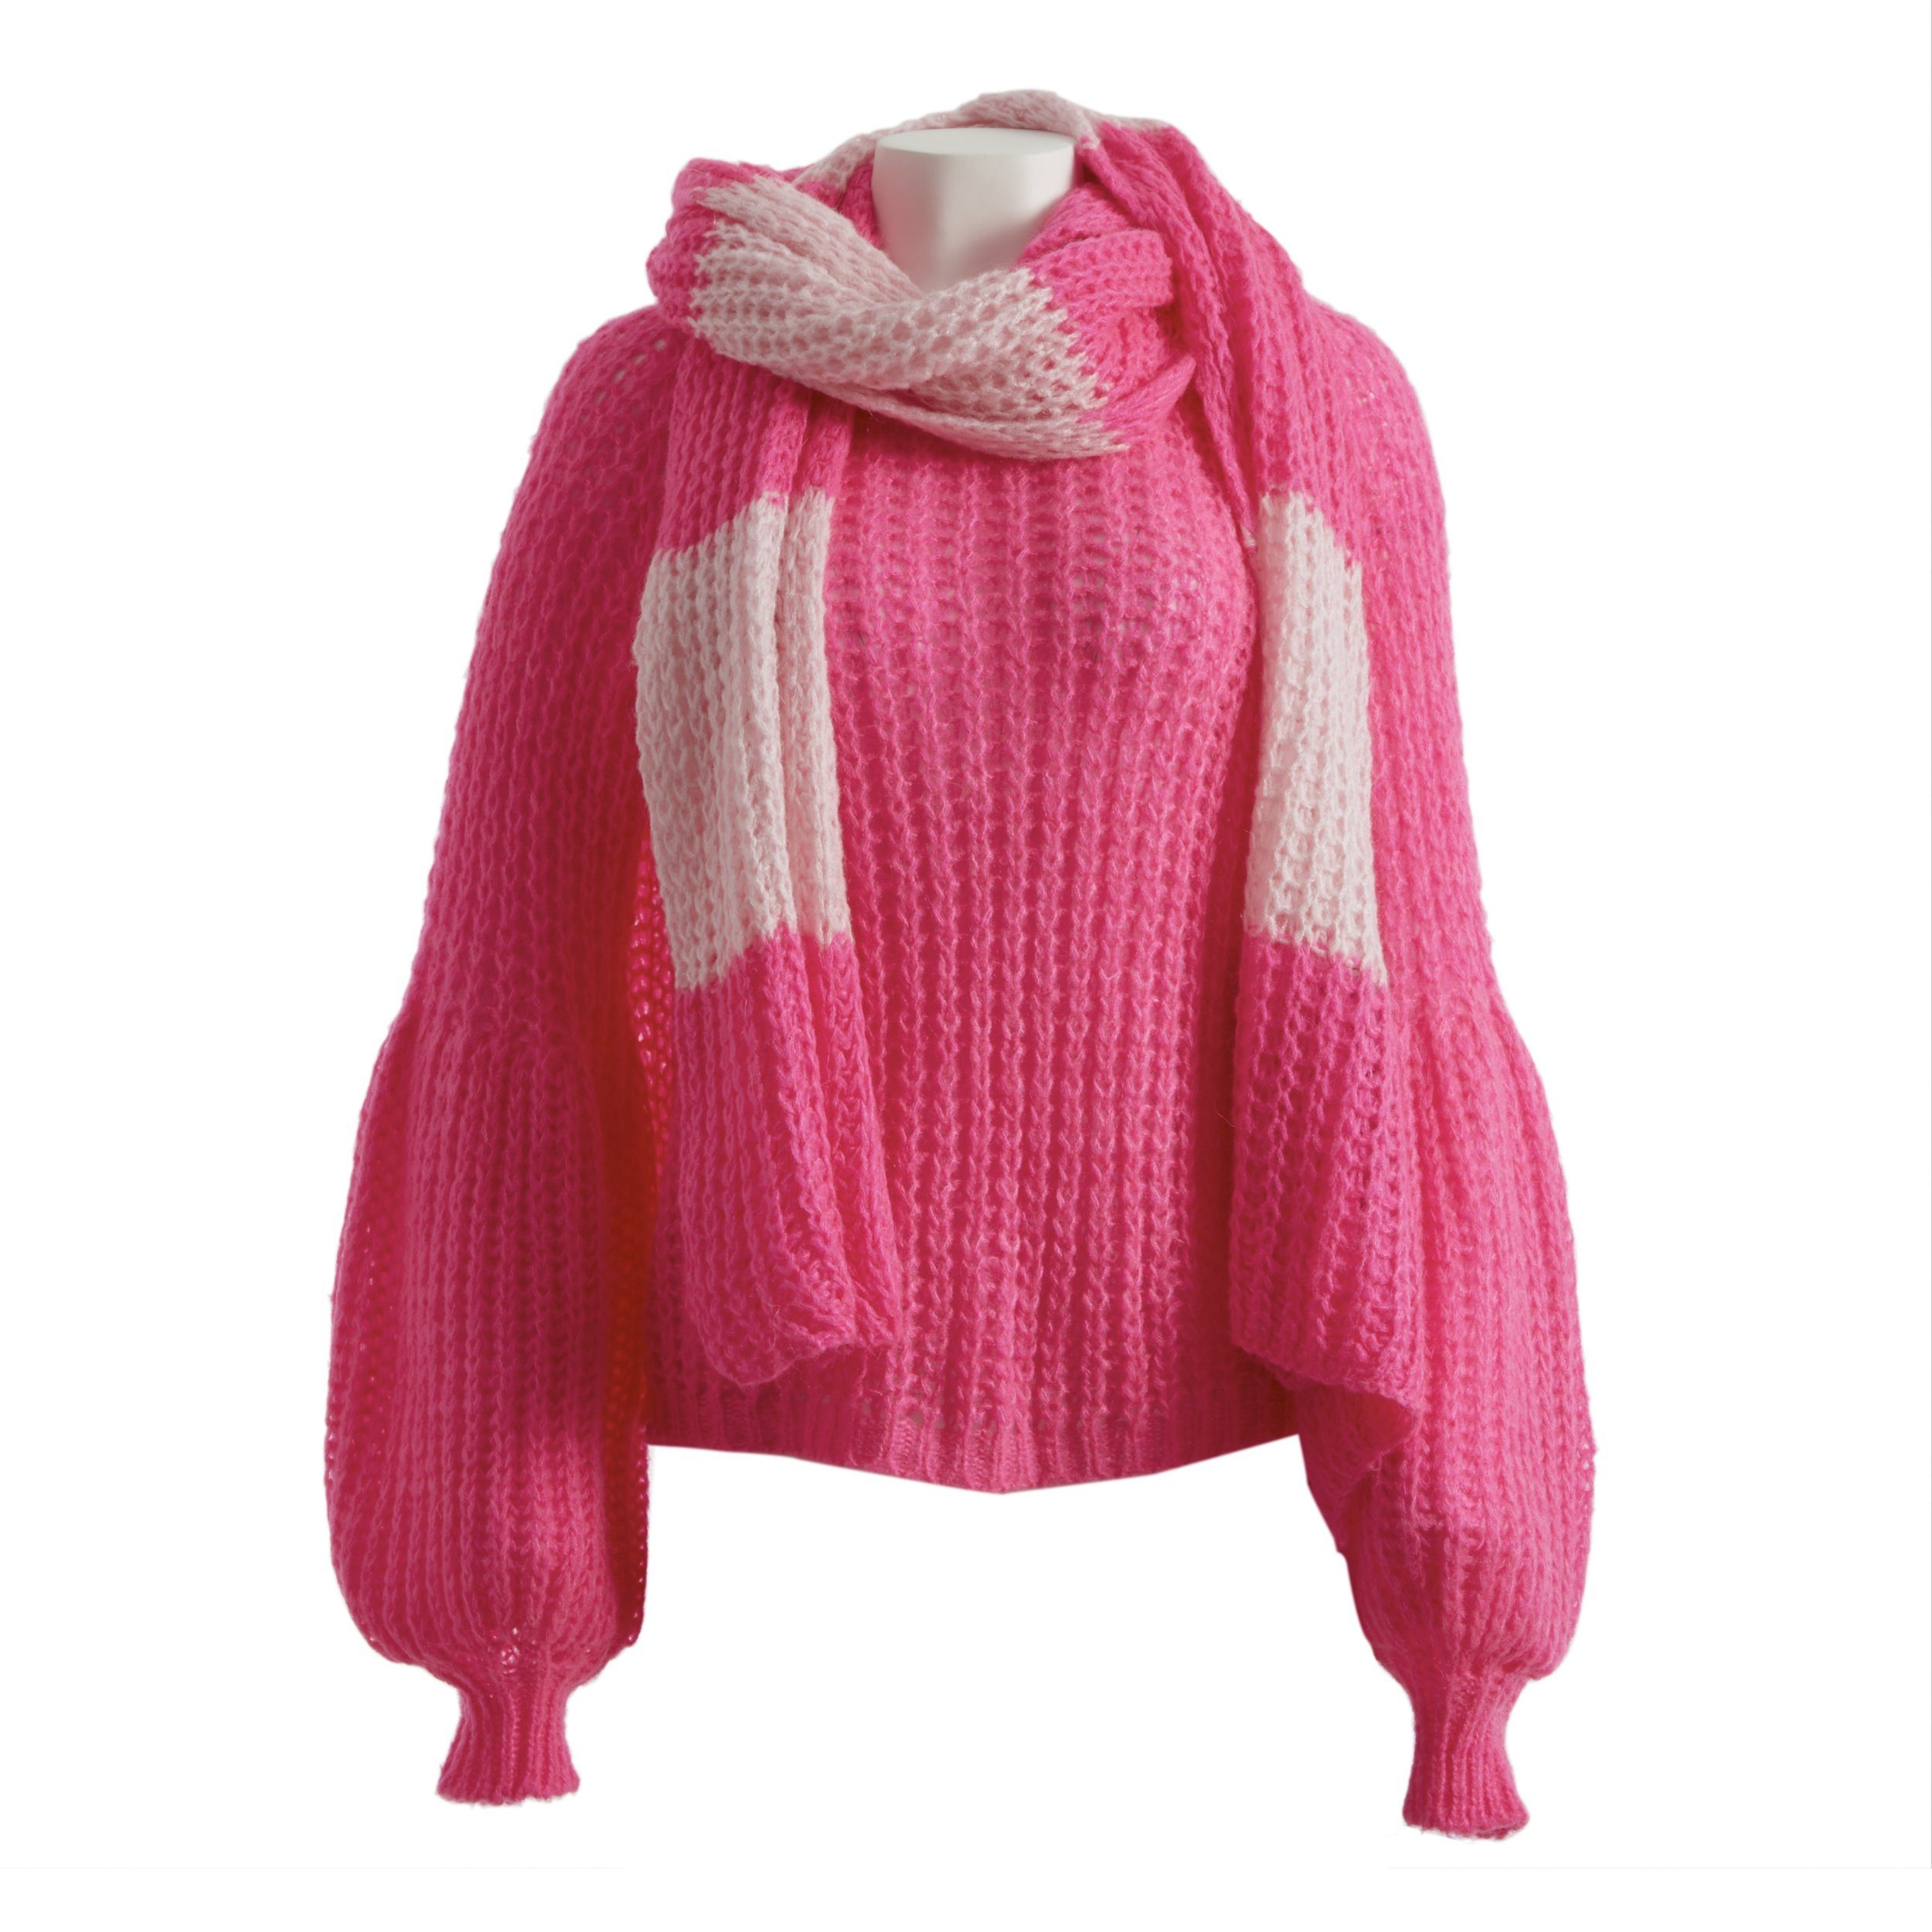 Mohair-blend cable rib-knit long scarf - electric and pale pink